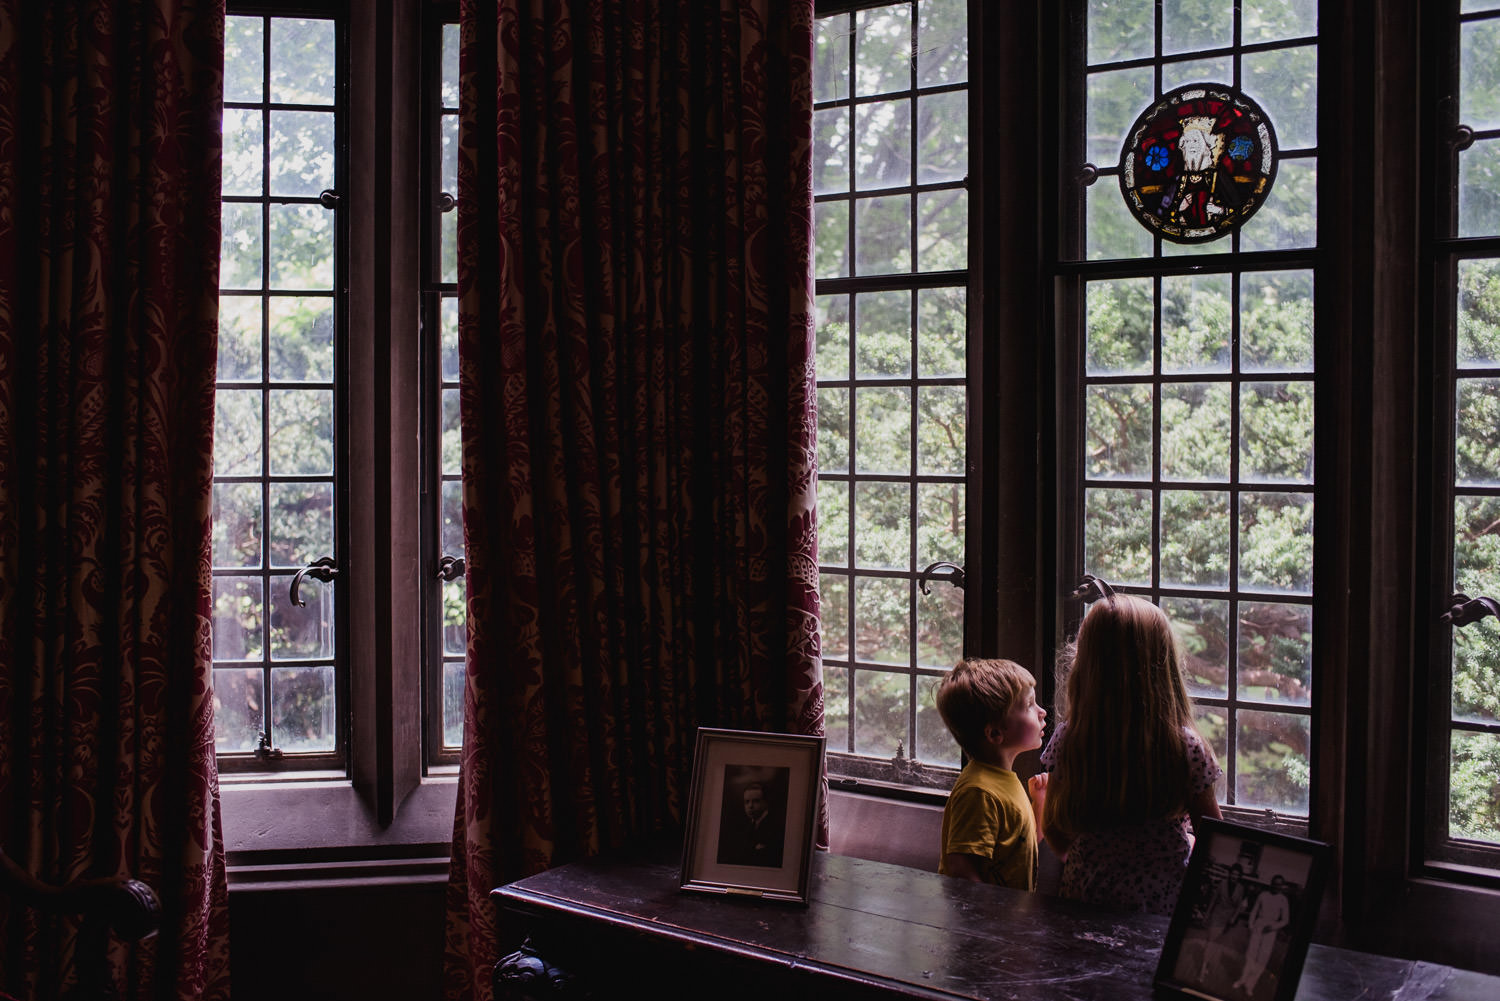 Two children look out a window at Coe House.